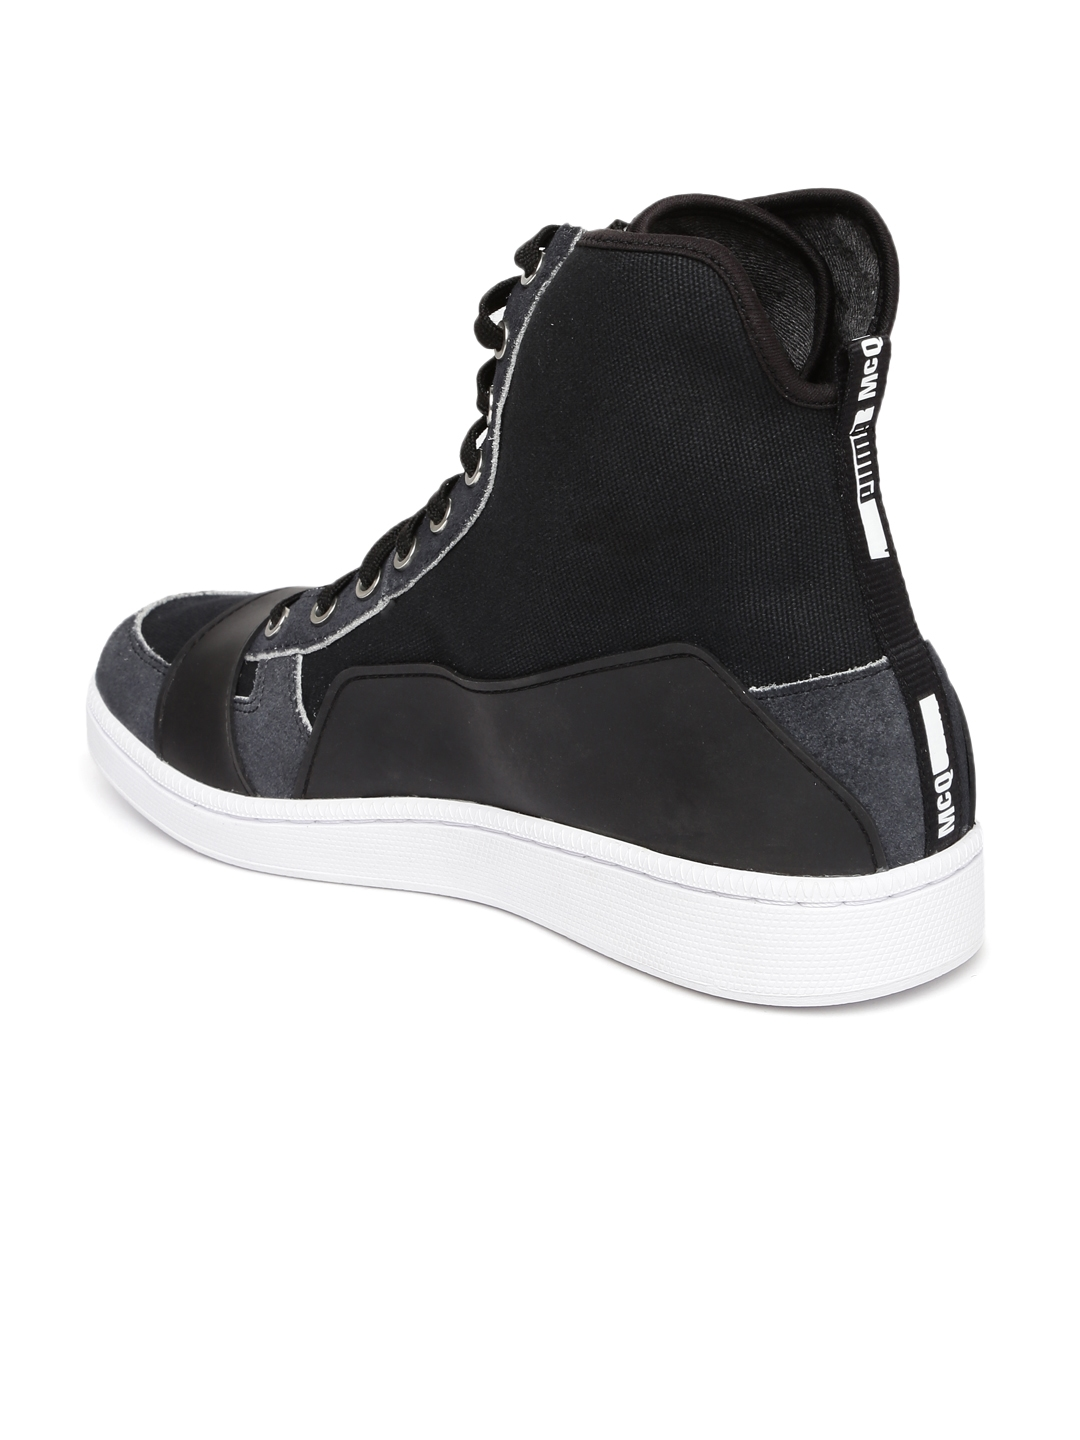 Fashion week Shoes Puma for men high top black for girls